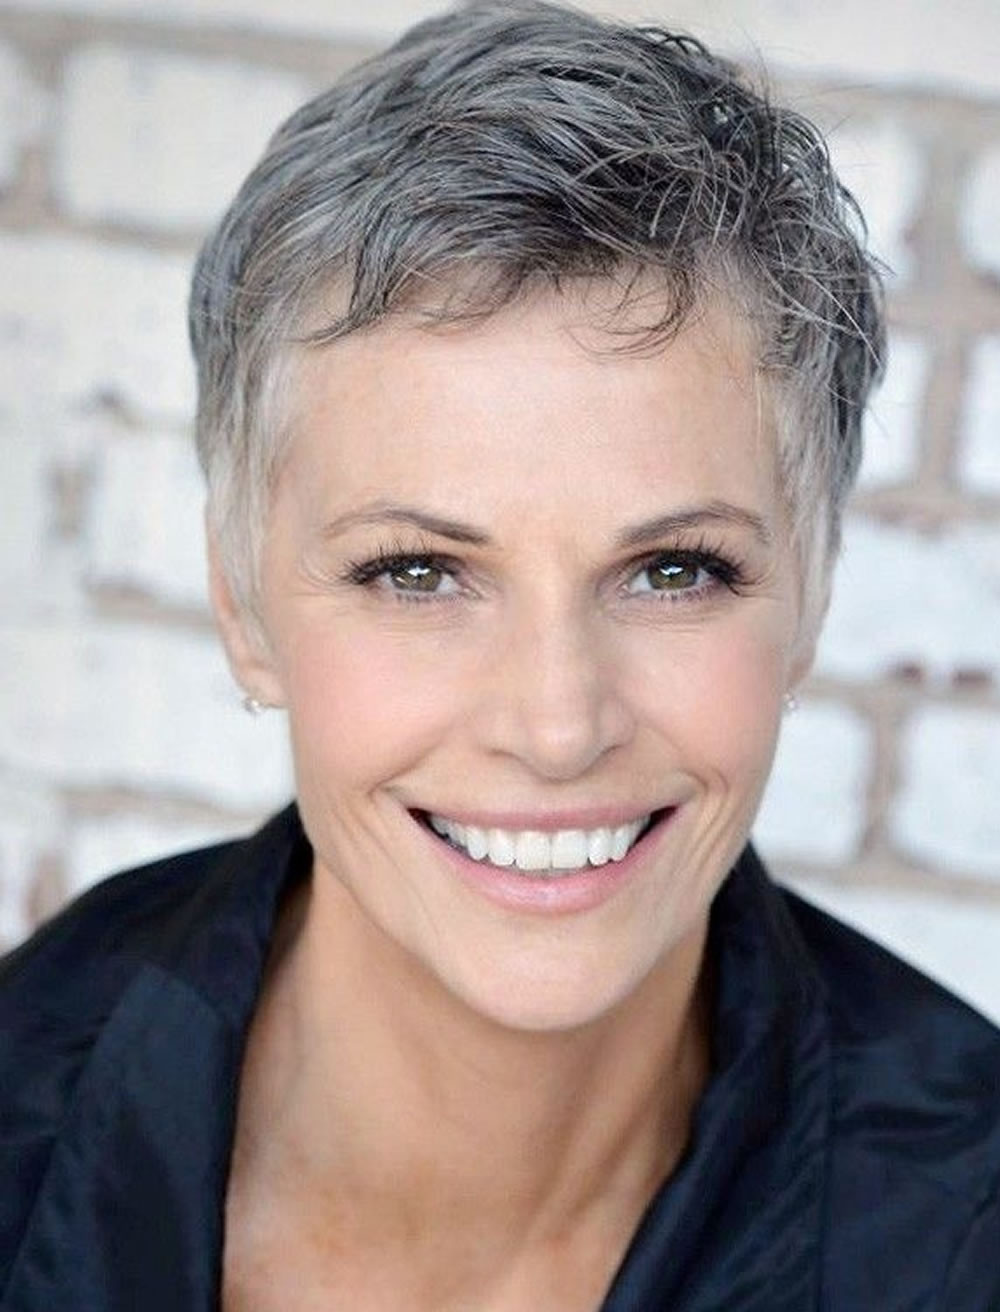 Best ideas about Short Haircuts For Women Over 50 2019 . Save or Pin Hairstyles and Haircuts for Older Women Over 50 for 2018 Now.